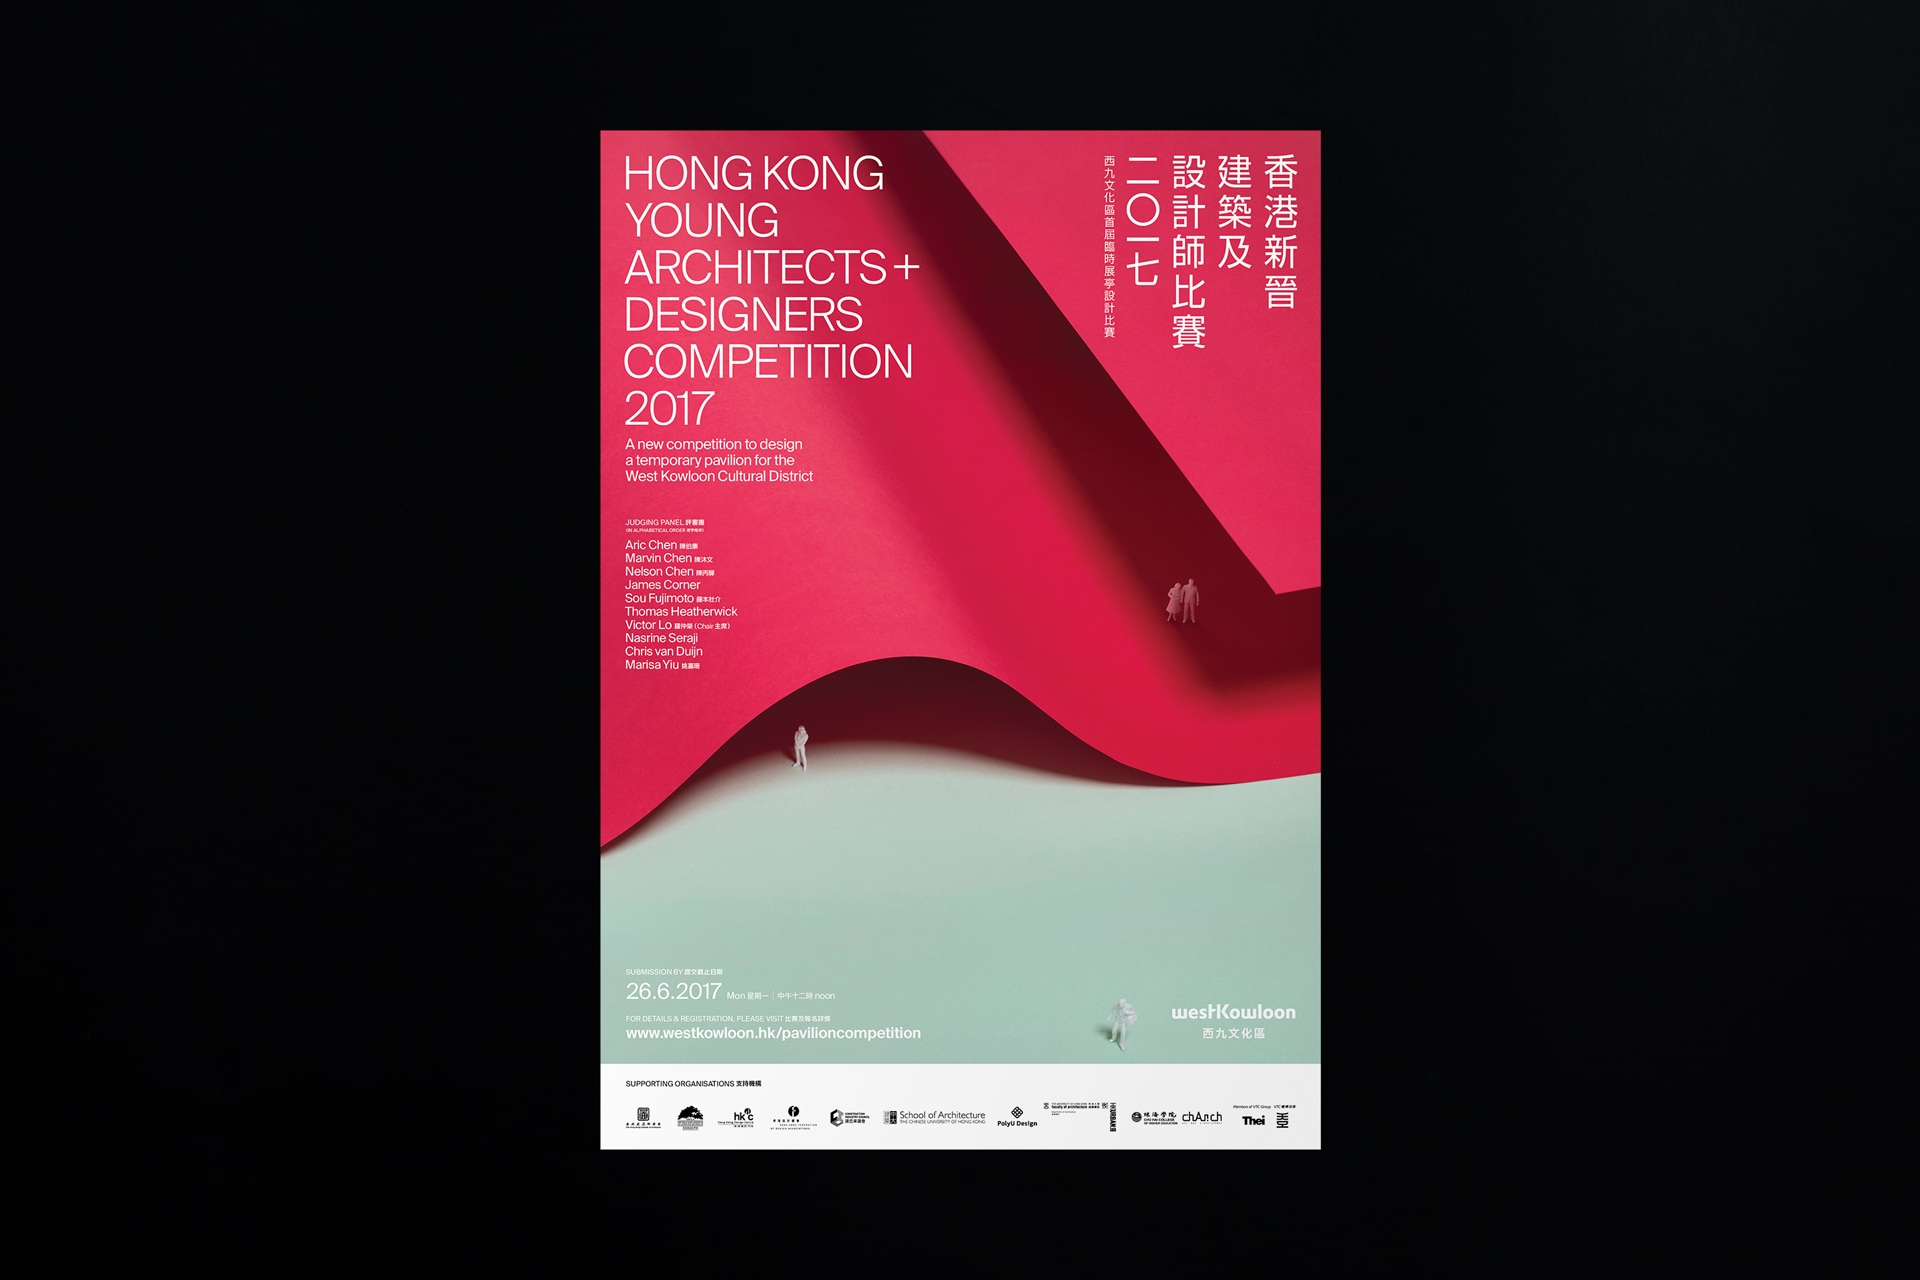 hong-kong-young-architects-designers-competition-2017_05